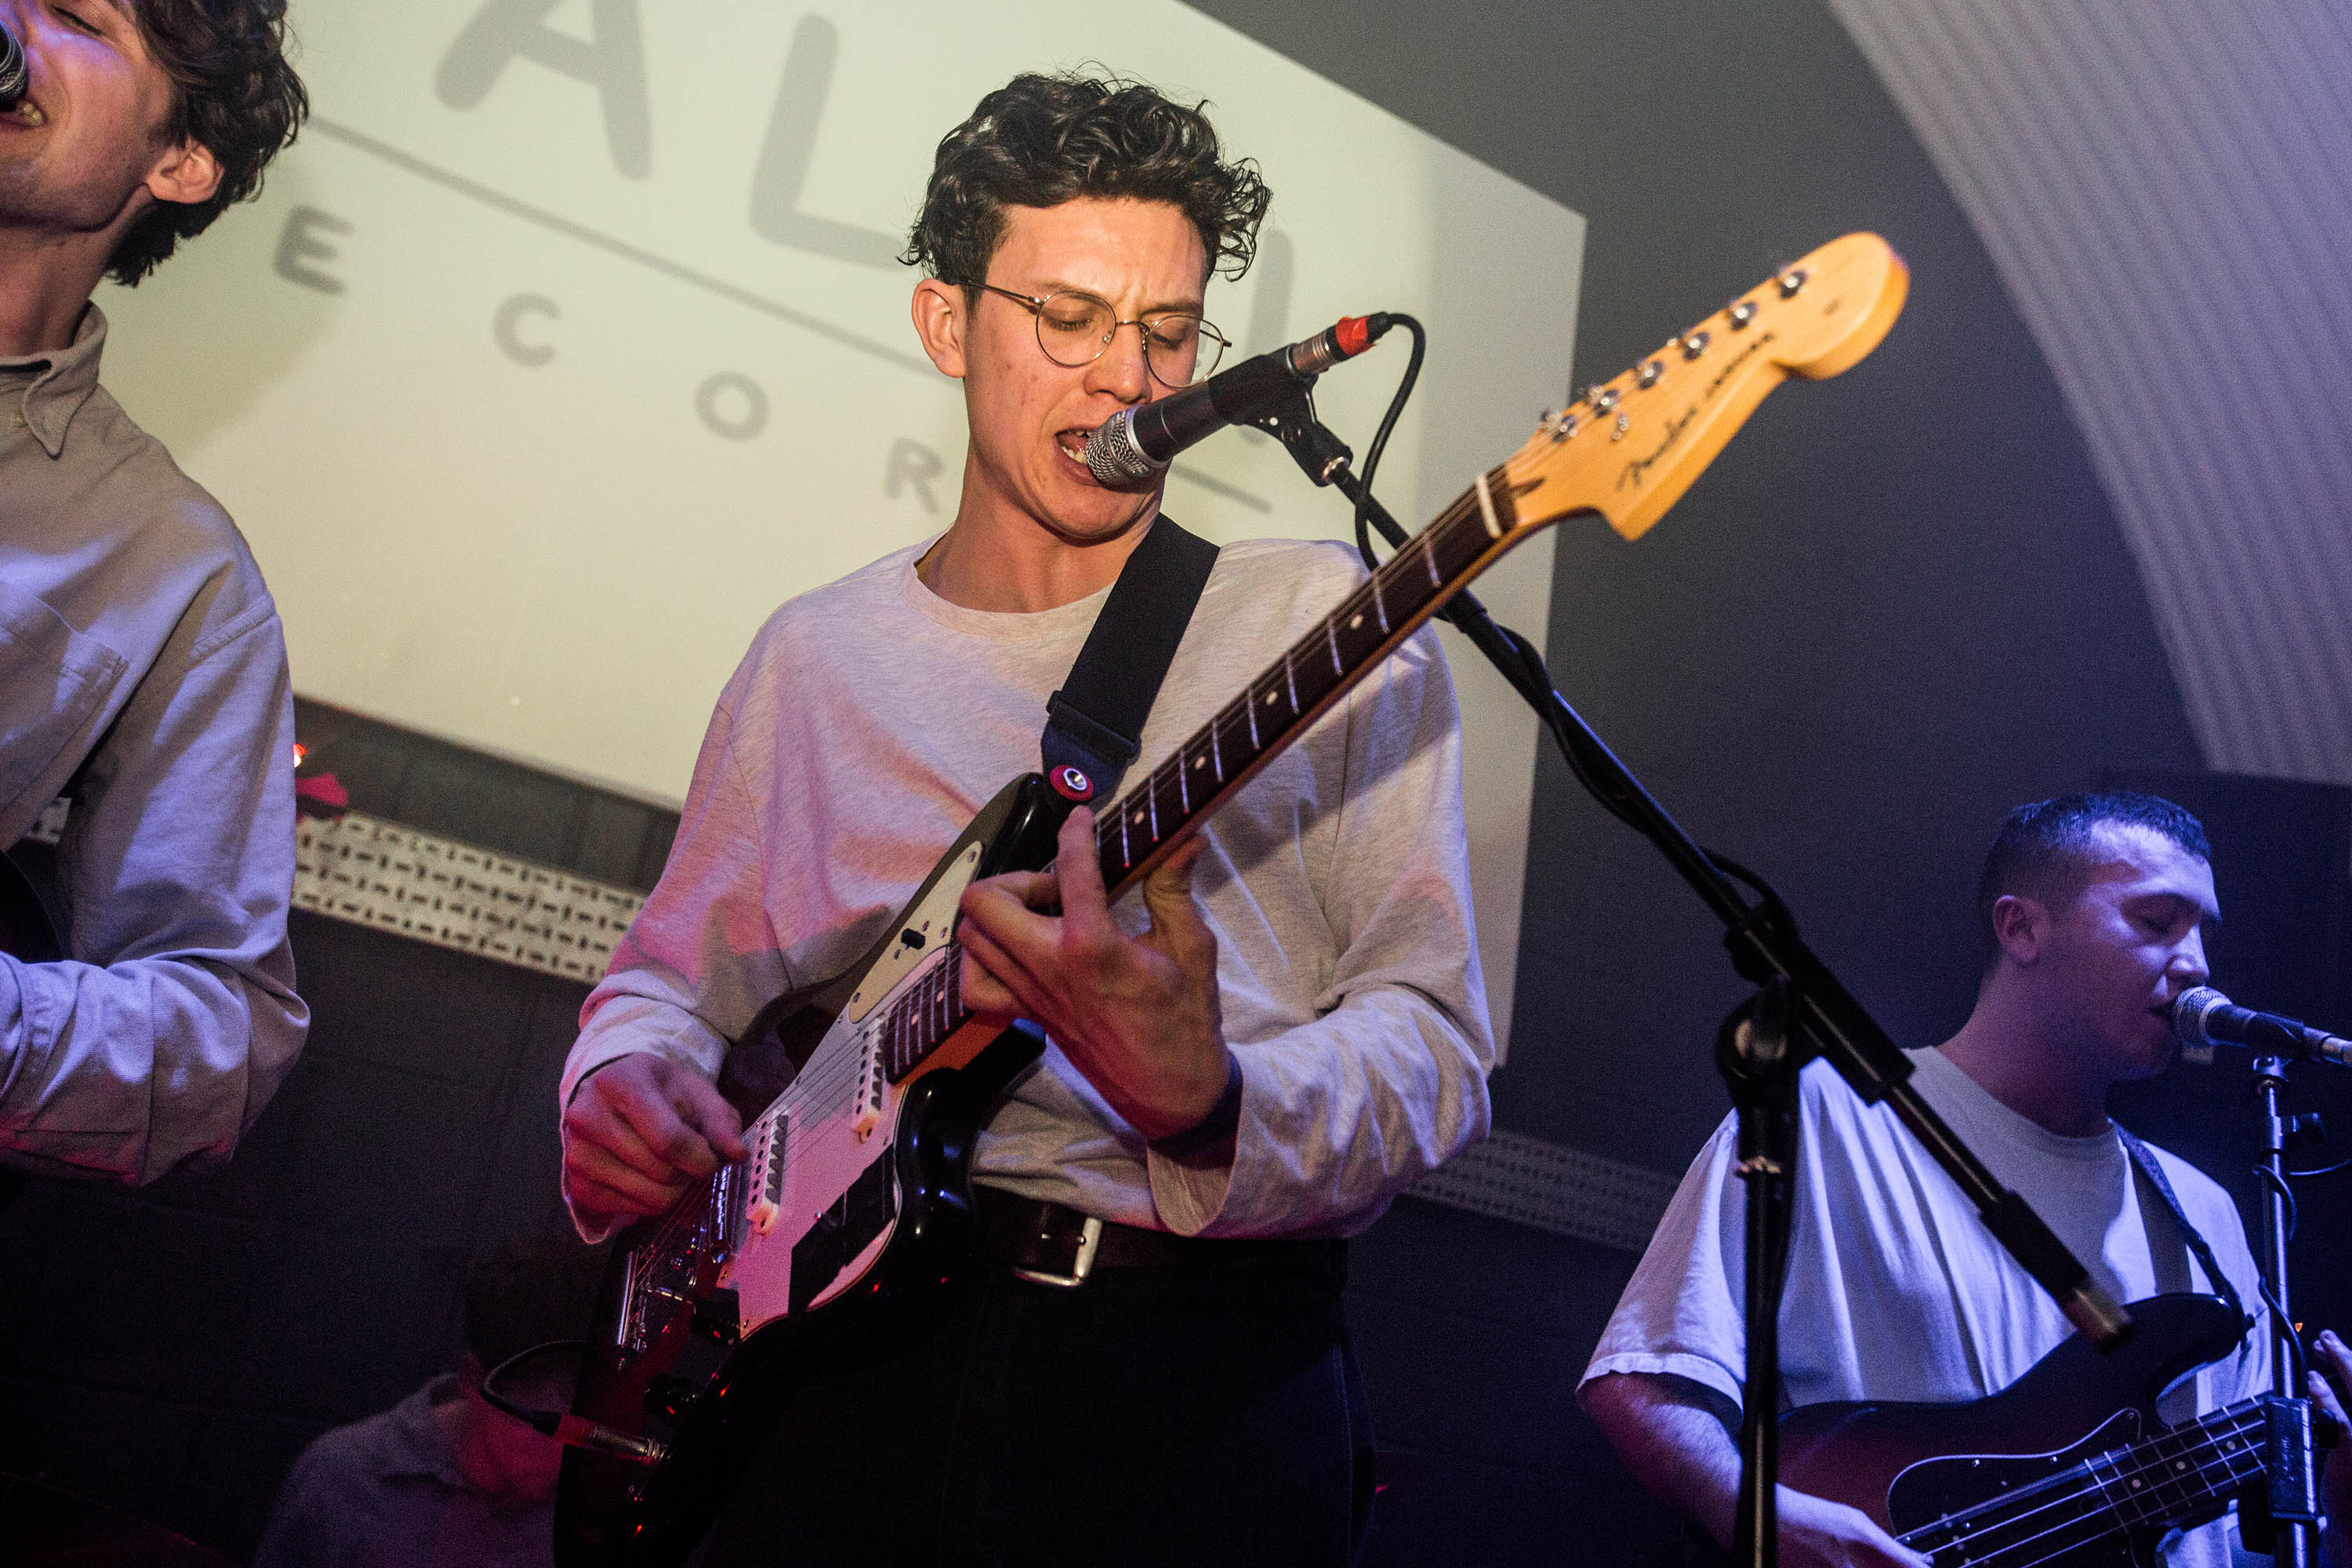 The Magic Gang, IDLES, Demob Happy and more added to The Great Escape